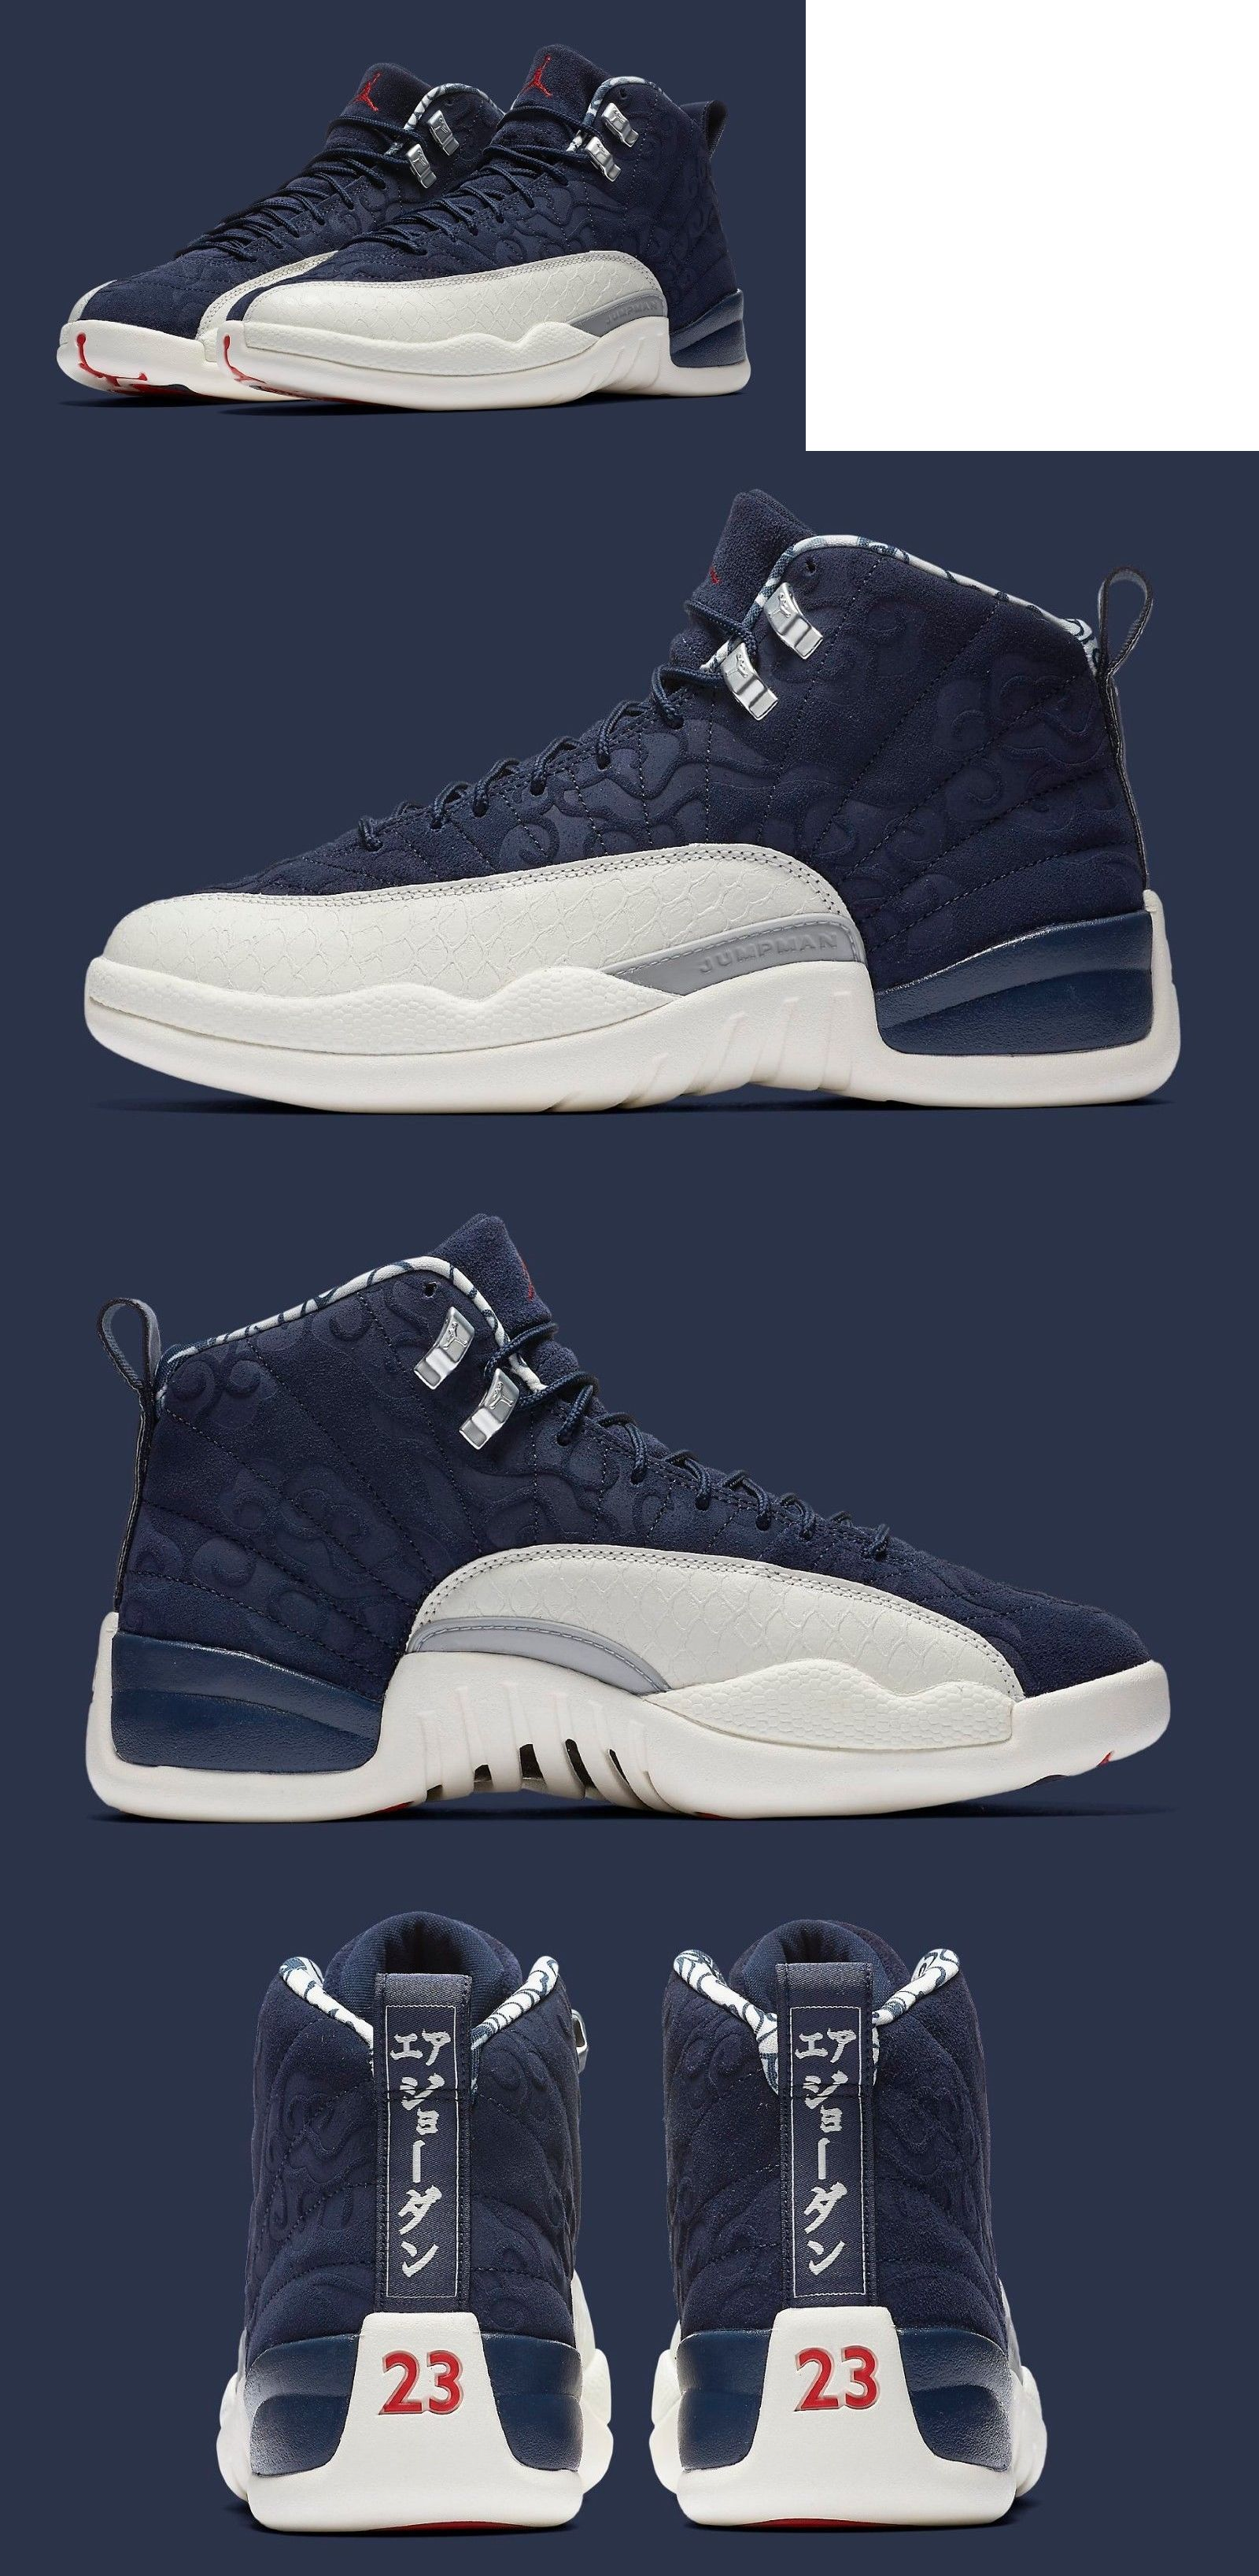 b2fd645dcfa060 Athletic Shoes 15709  Air Jordan 12 Retro Prm Japan Bv8016-445  International Flight College Navy Red -  BUY IT NOW ONLY   150 on eBay!